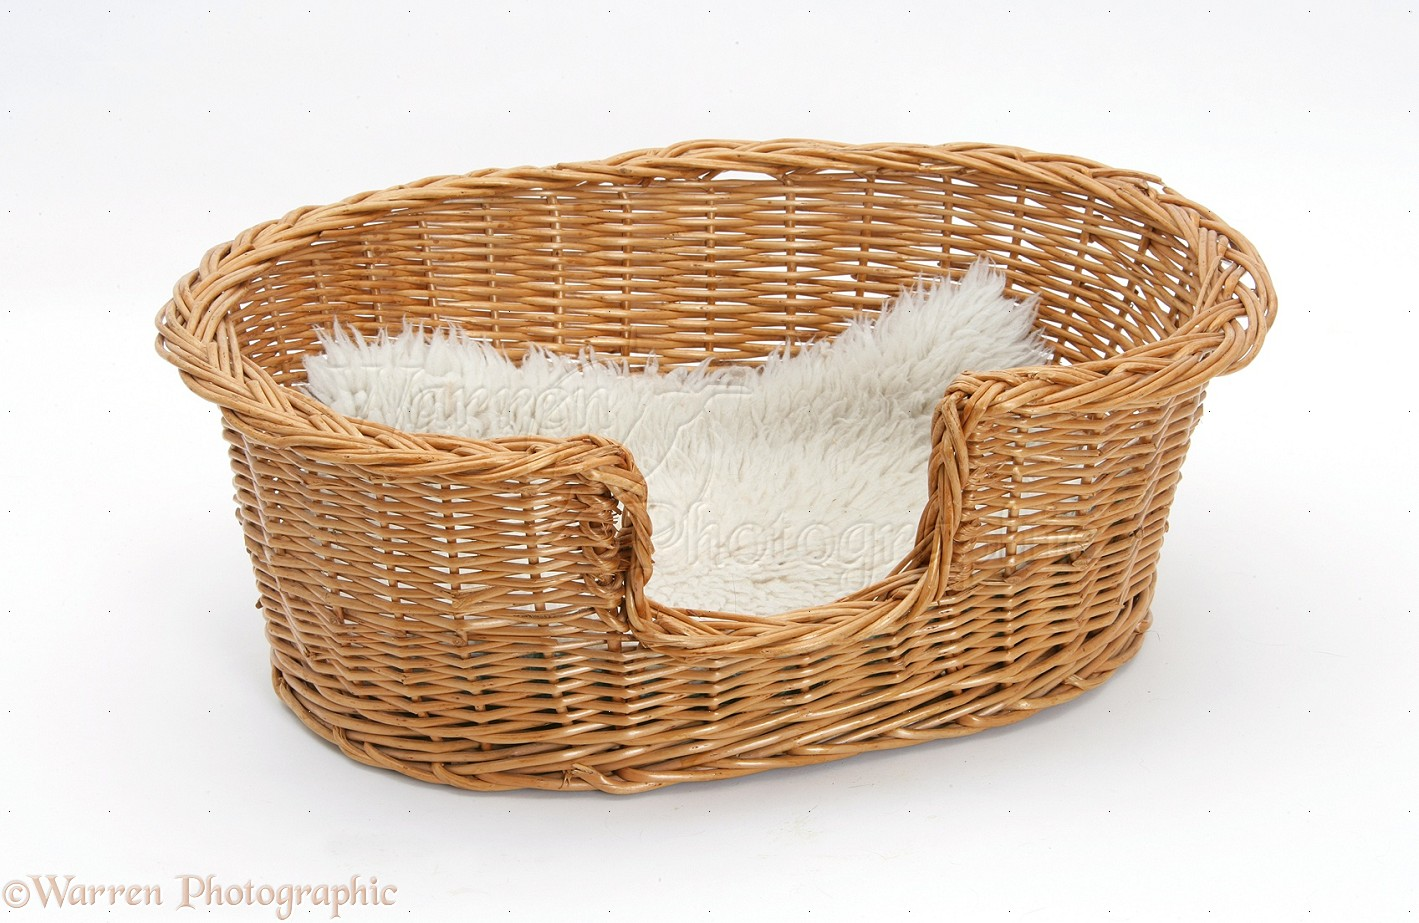 Basket clipart brown basket. Wicker cat photo wp